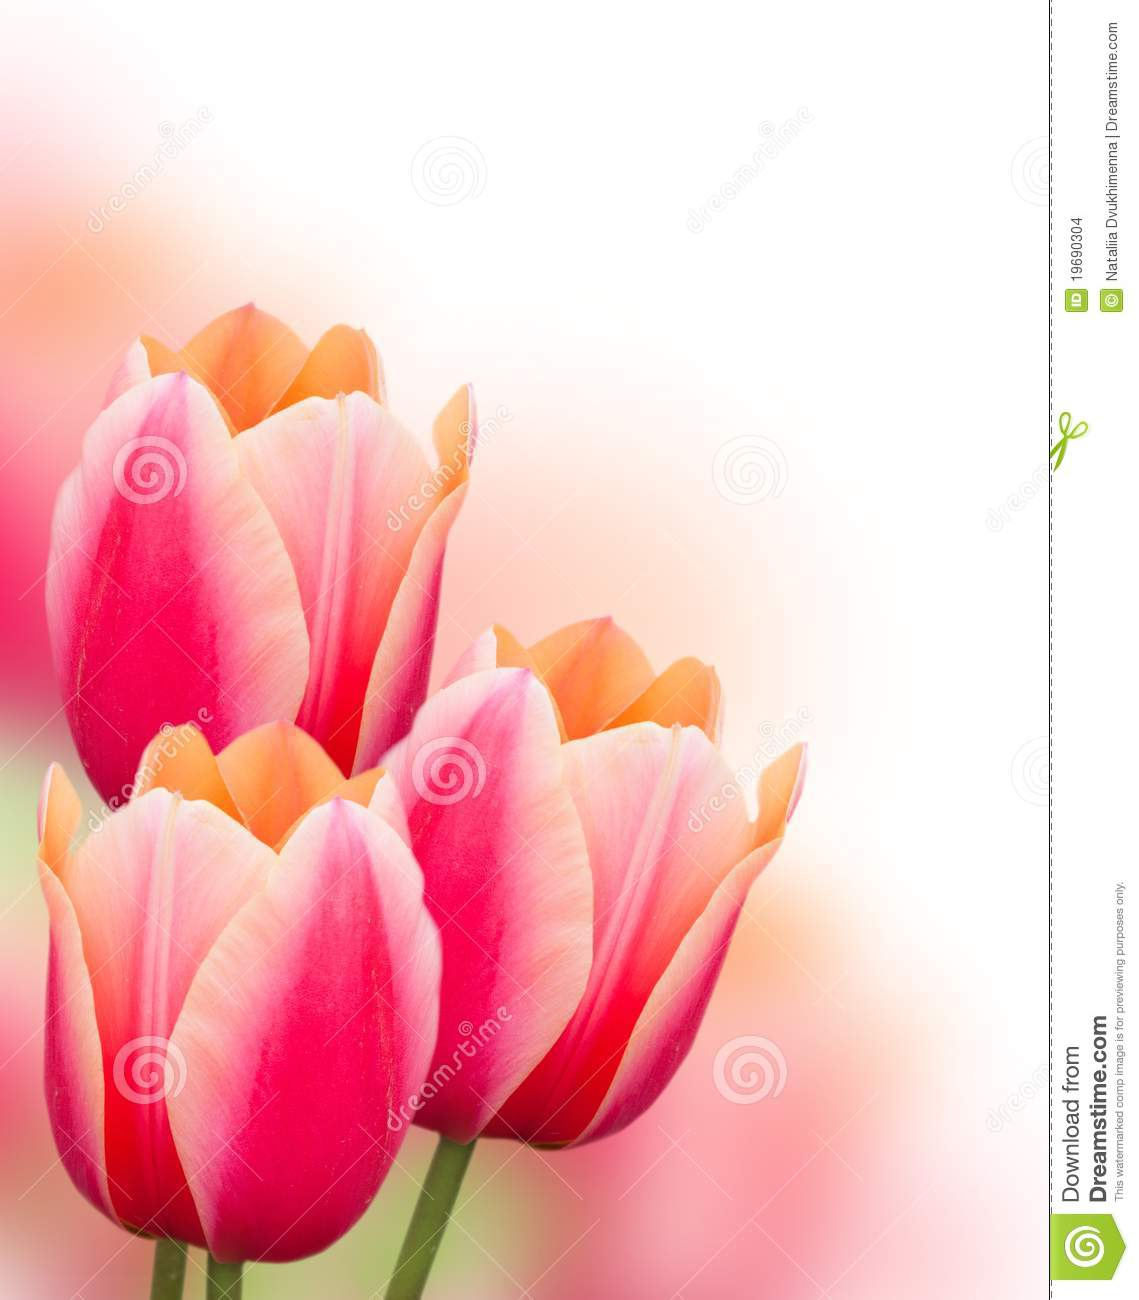 More similar stock images of ` Pink tulip flowers background `